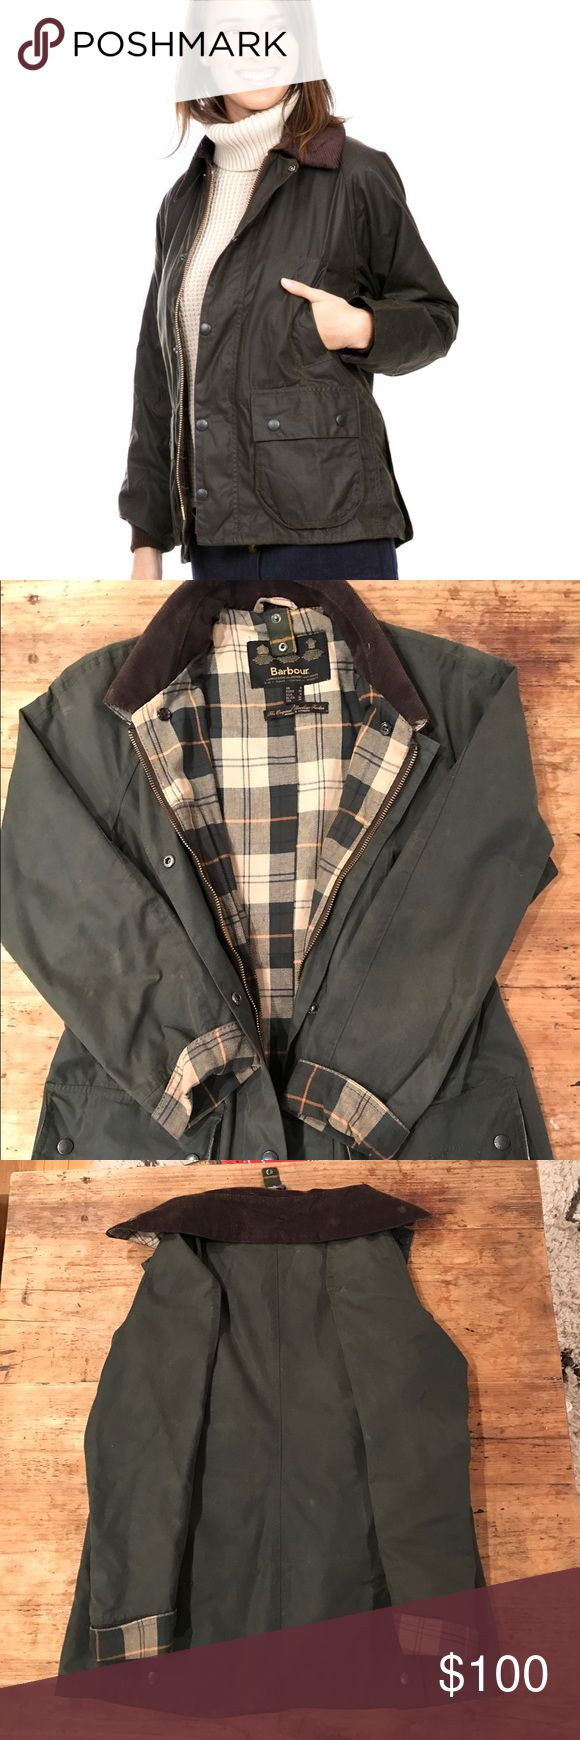 Barbour Bedale classic waxed jacket Olive waxed jacket. Corduroy collar. In good condition. Barbour Jackets & Coats